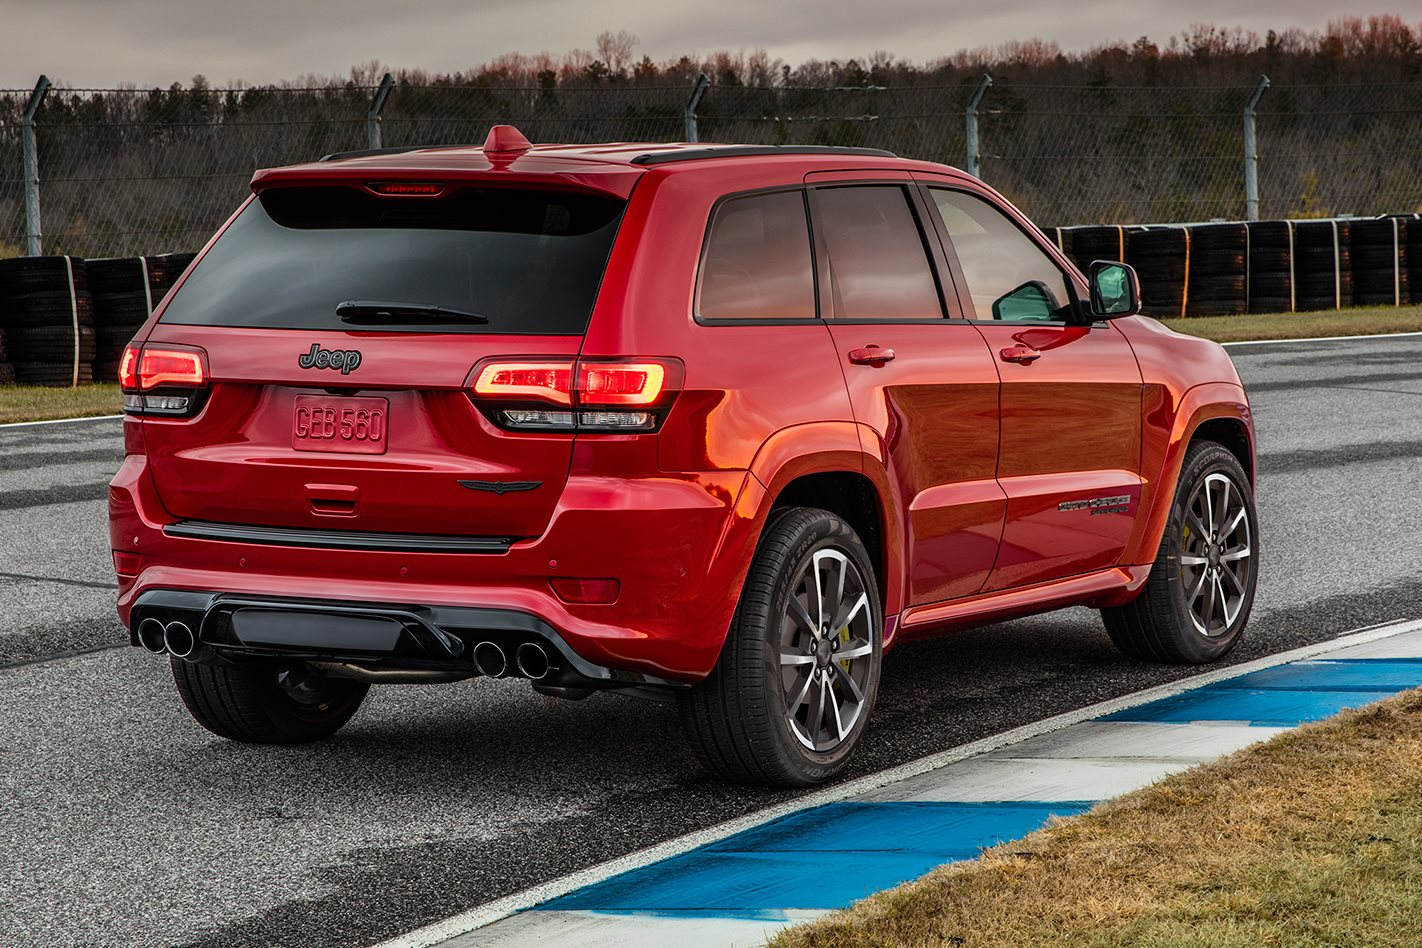 2018 Jeep Grand Cherokee Trackhawk arrives in December